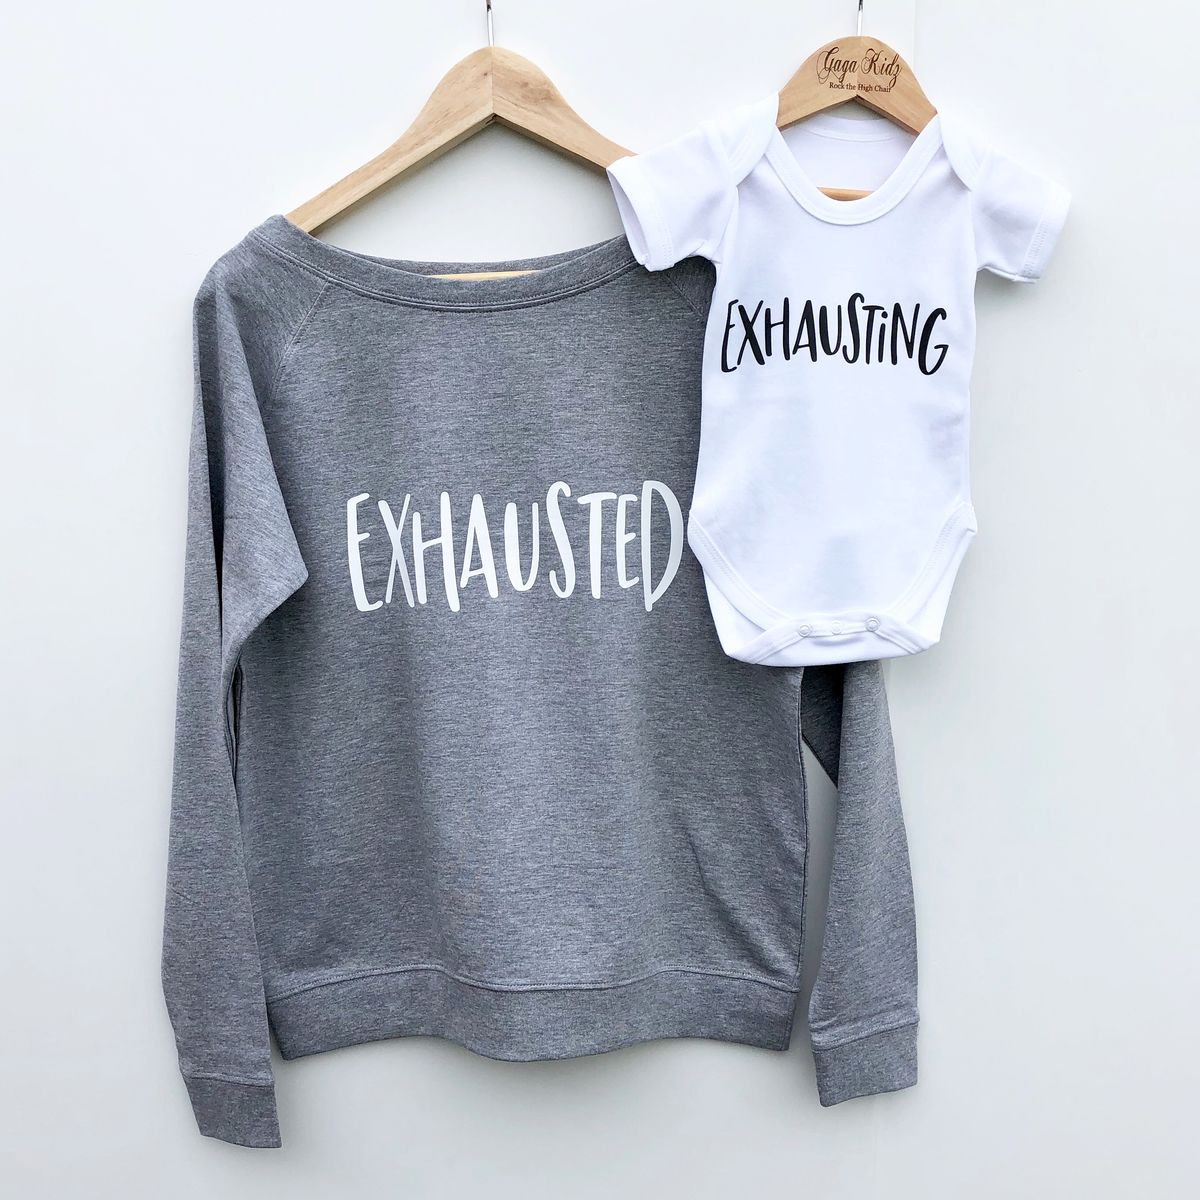 'Exhausting' Black & White Bodysuits (various sizes)  - product images  of